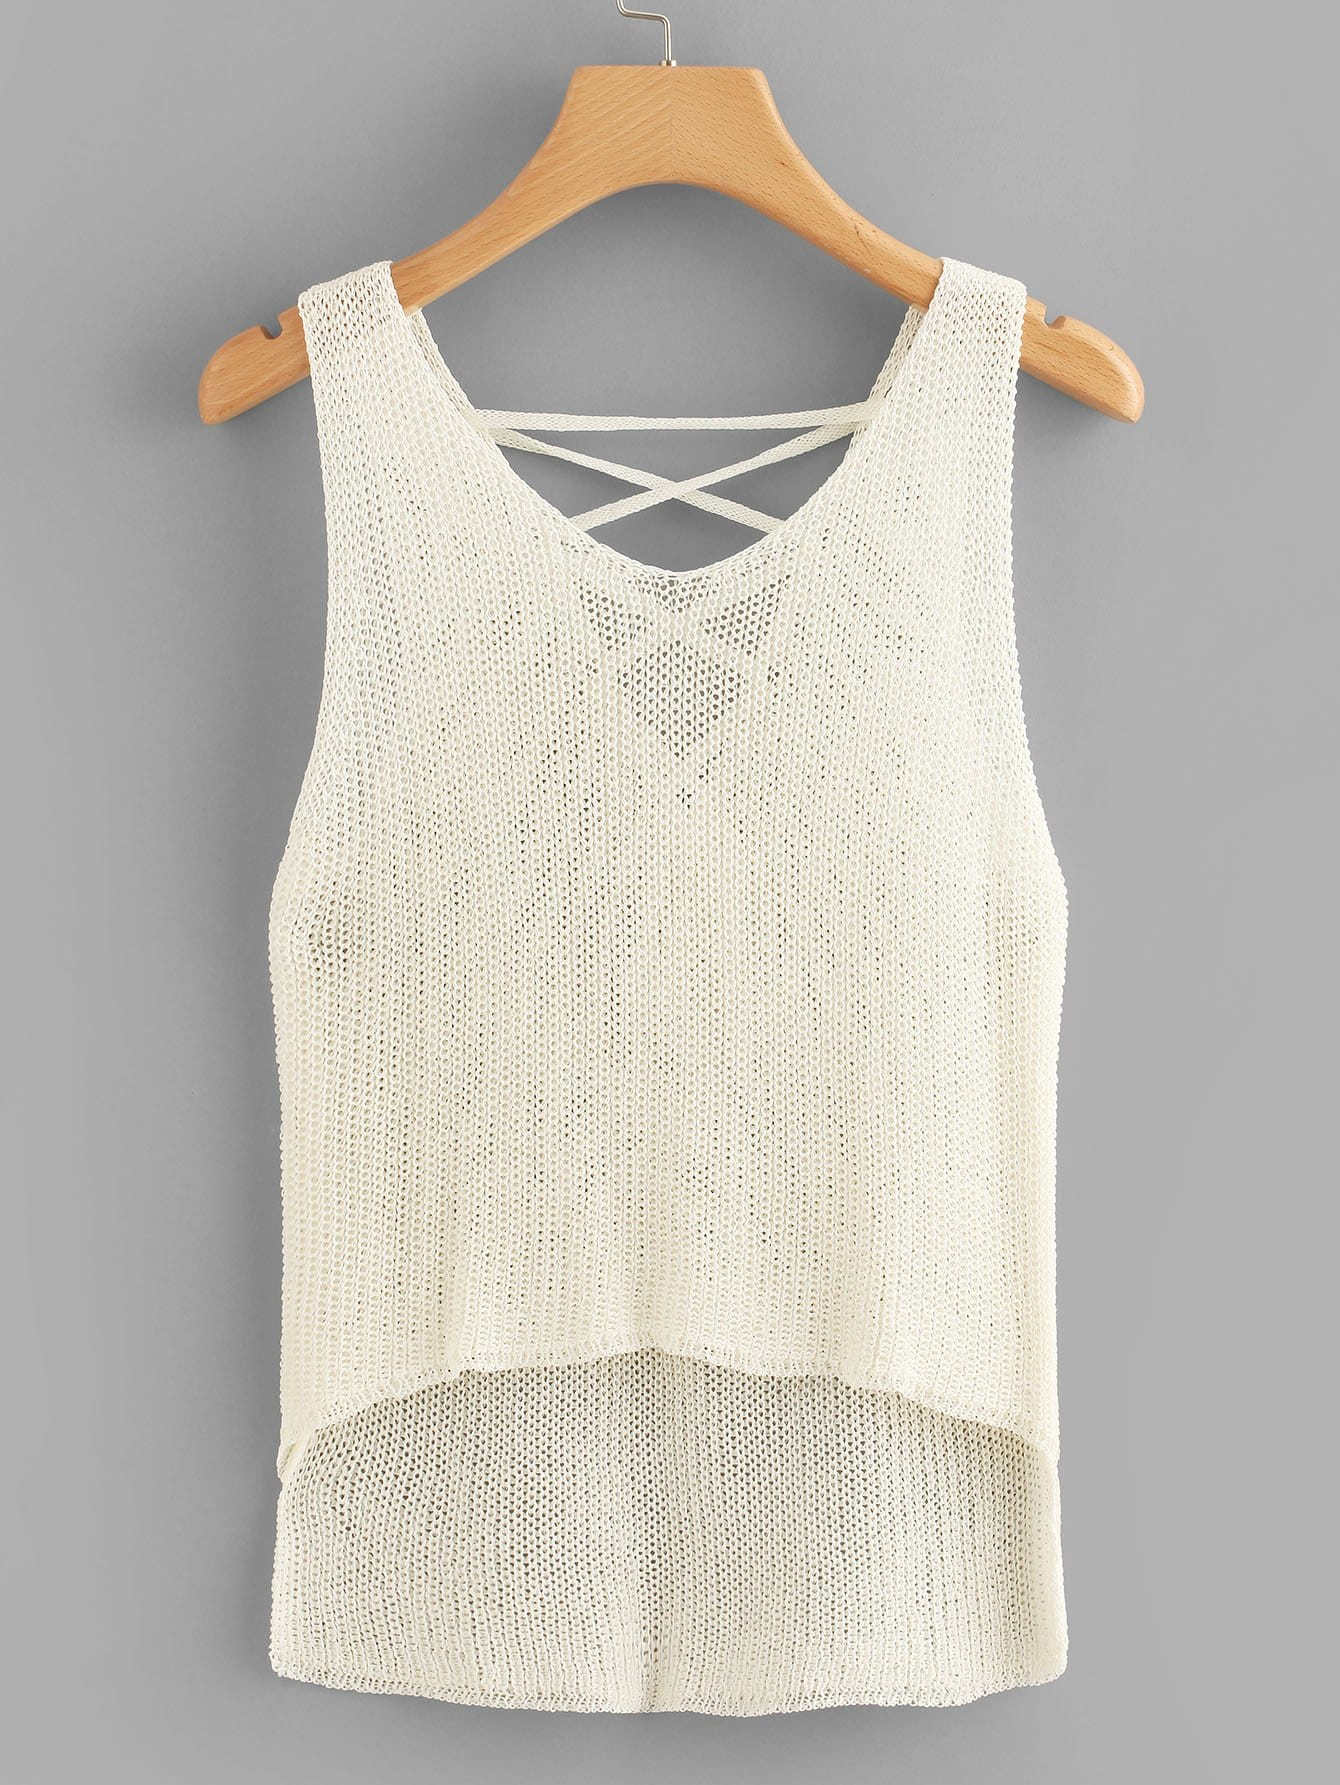 Lace Up Knit Top lace up knit top